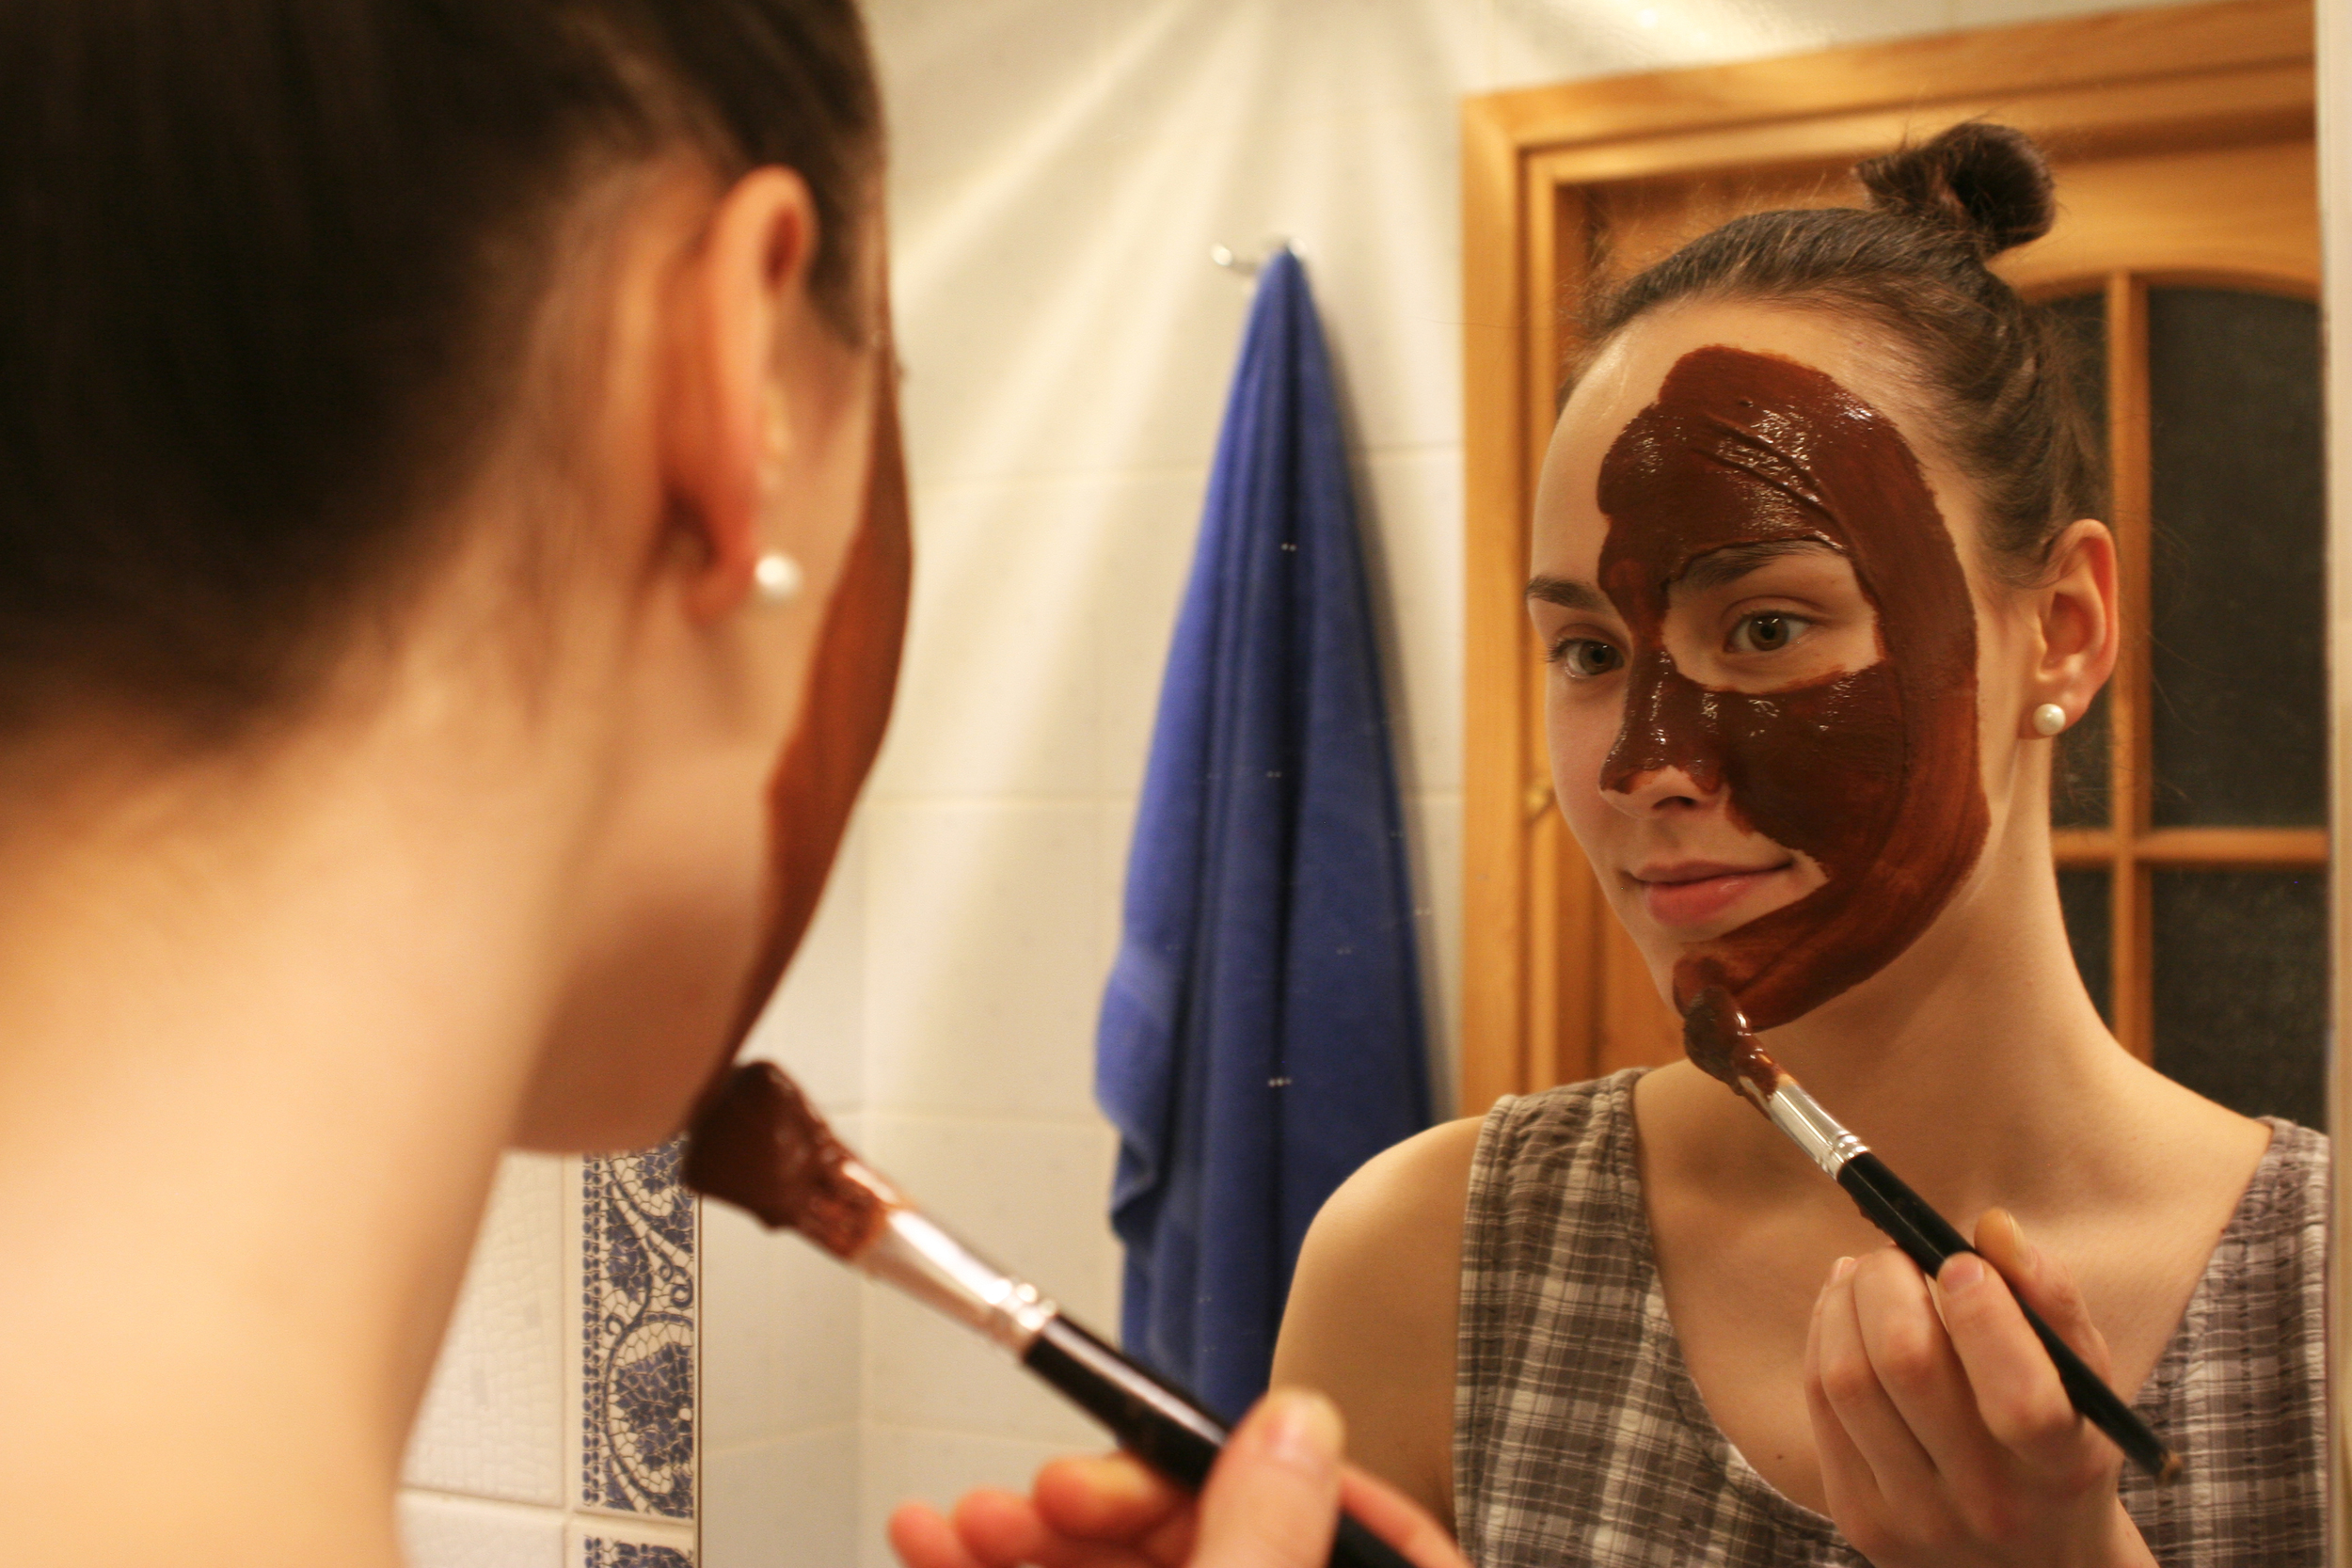 Apply the mixture on your face